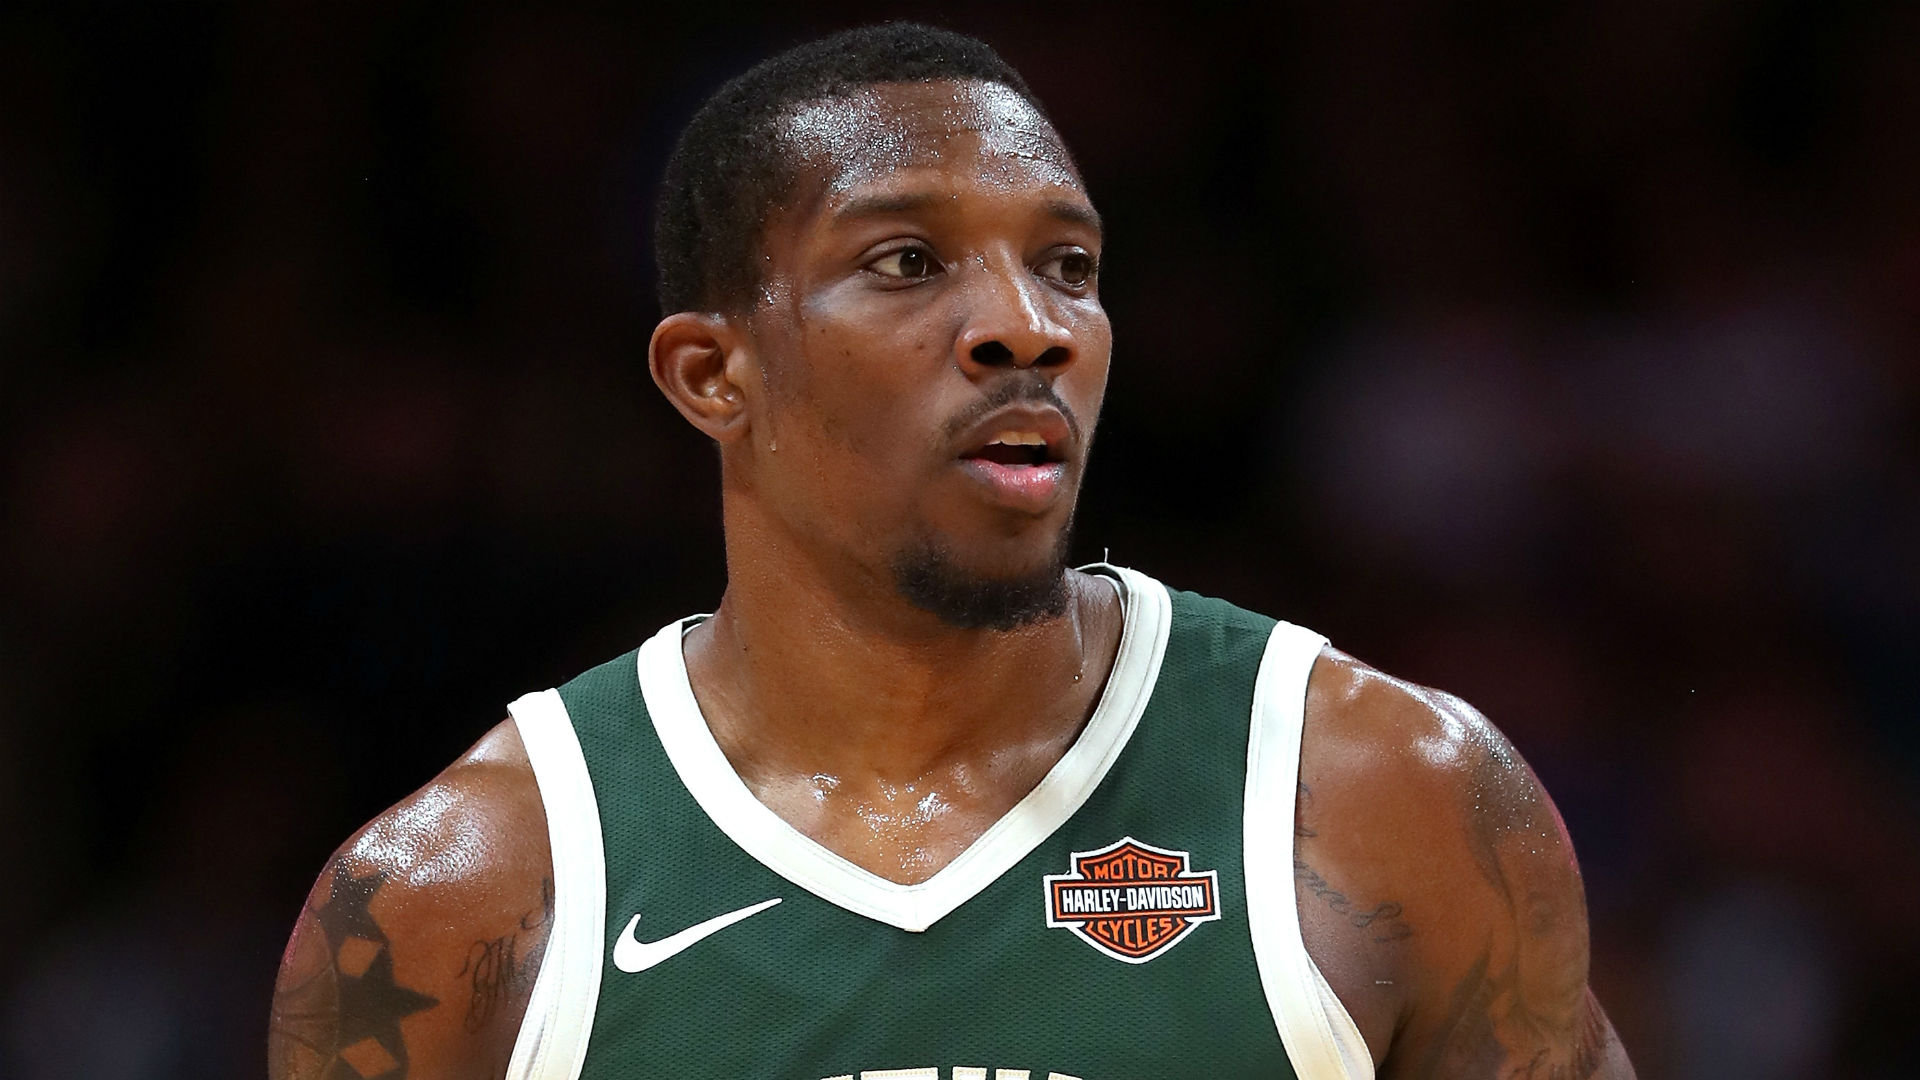 NBA playoffs 2019: Mike Budenholzer says Bucks need Eric Bledsoe 'to play better'